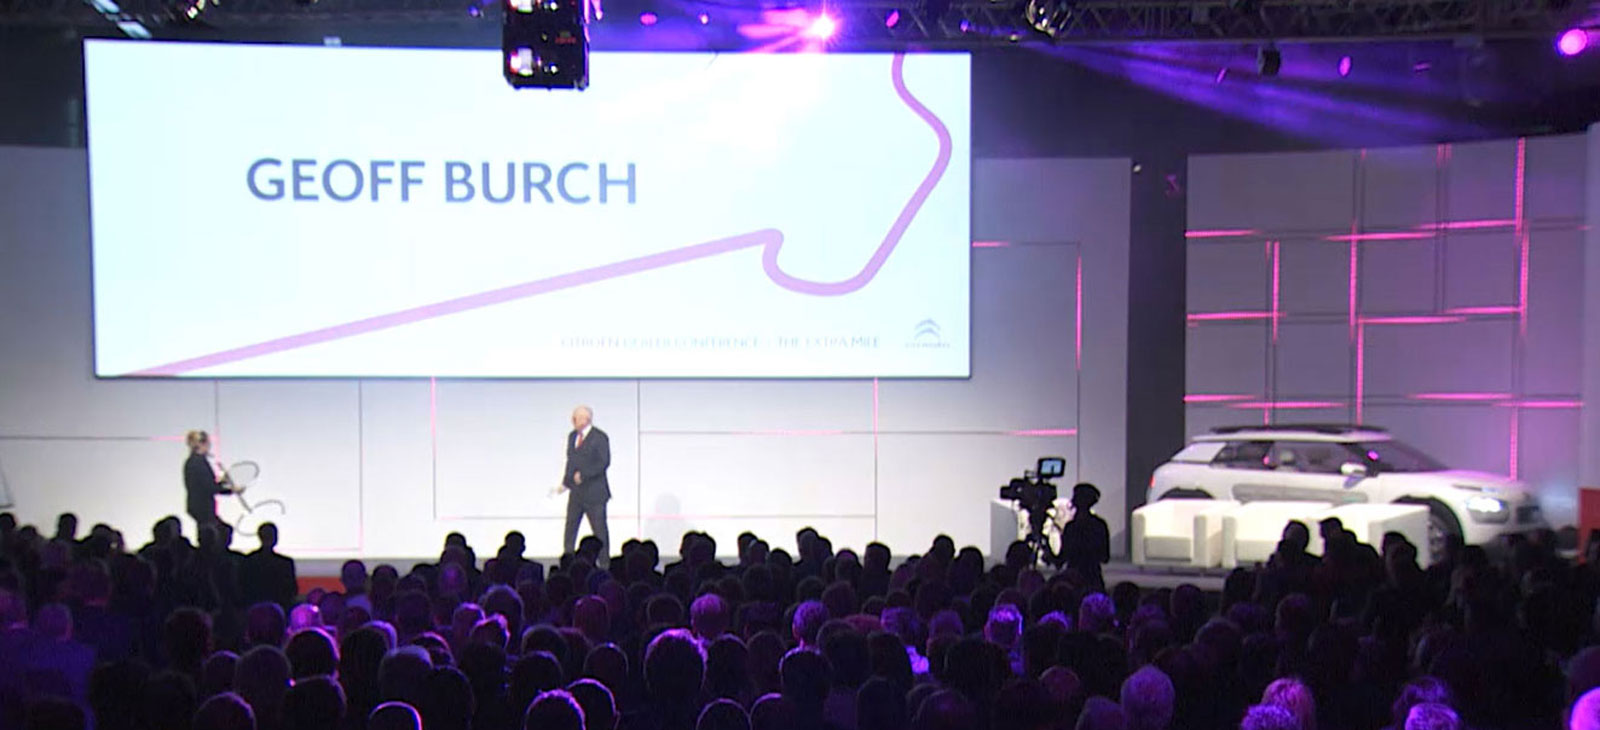 Geoff Burch on stage at Citroën event